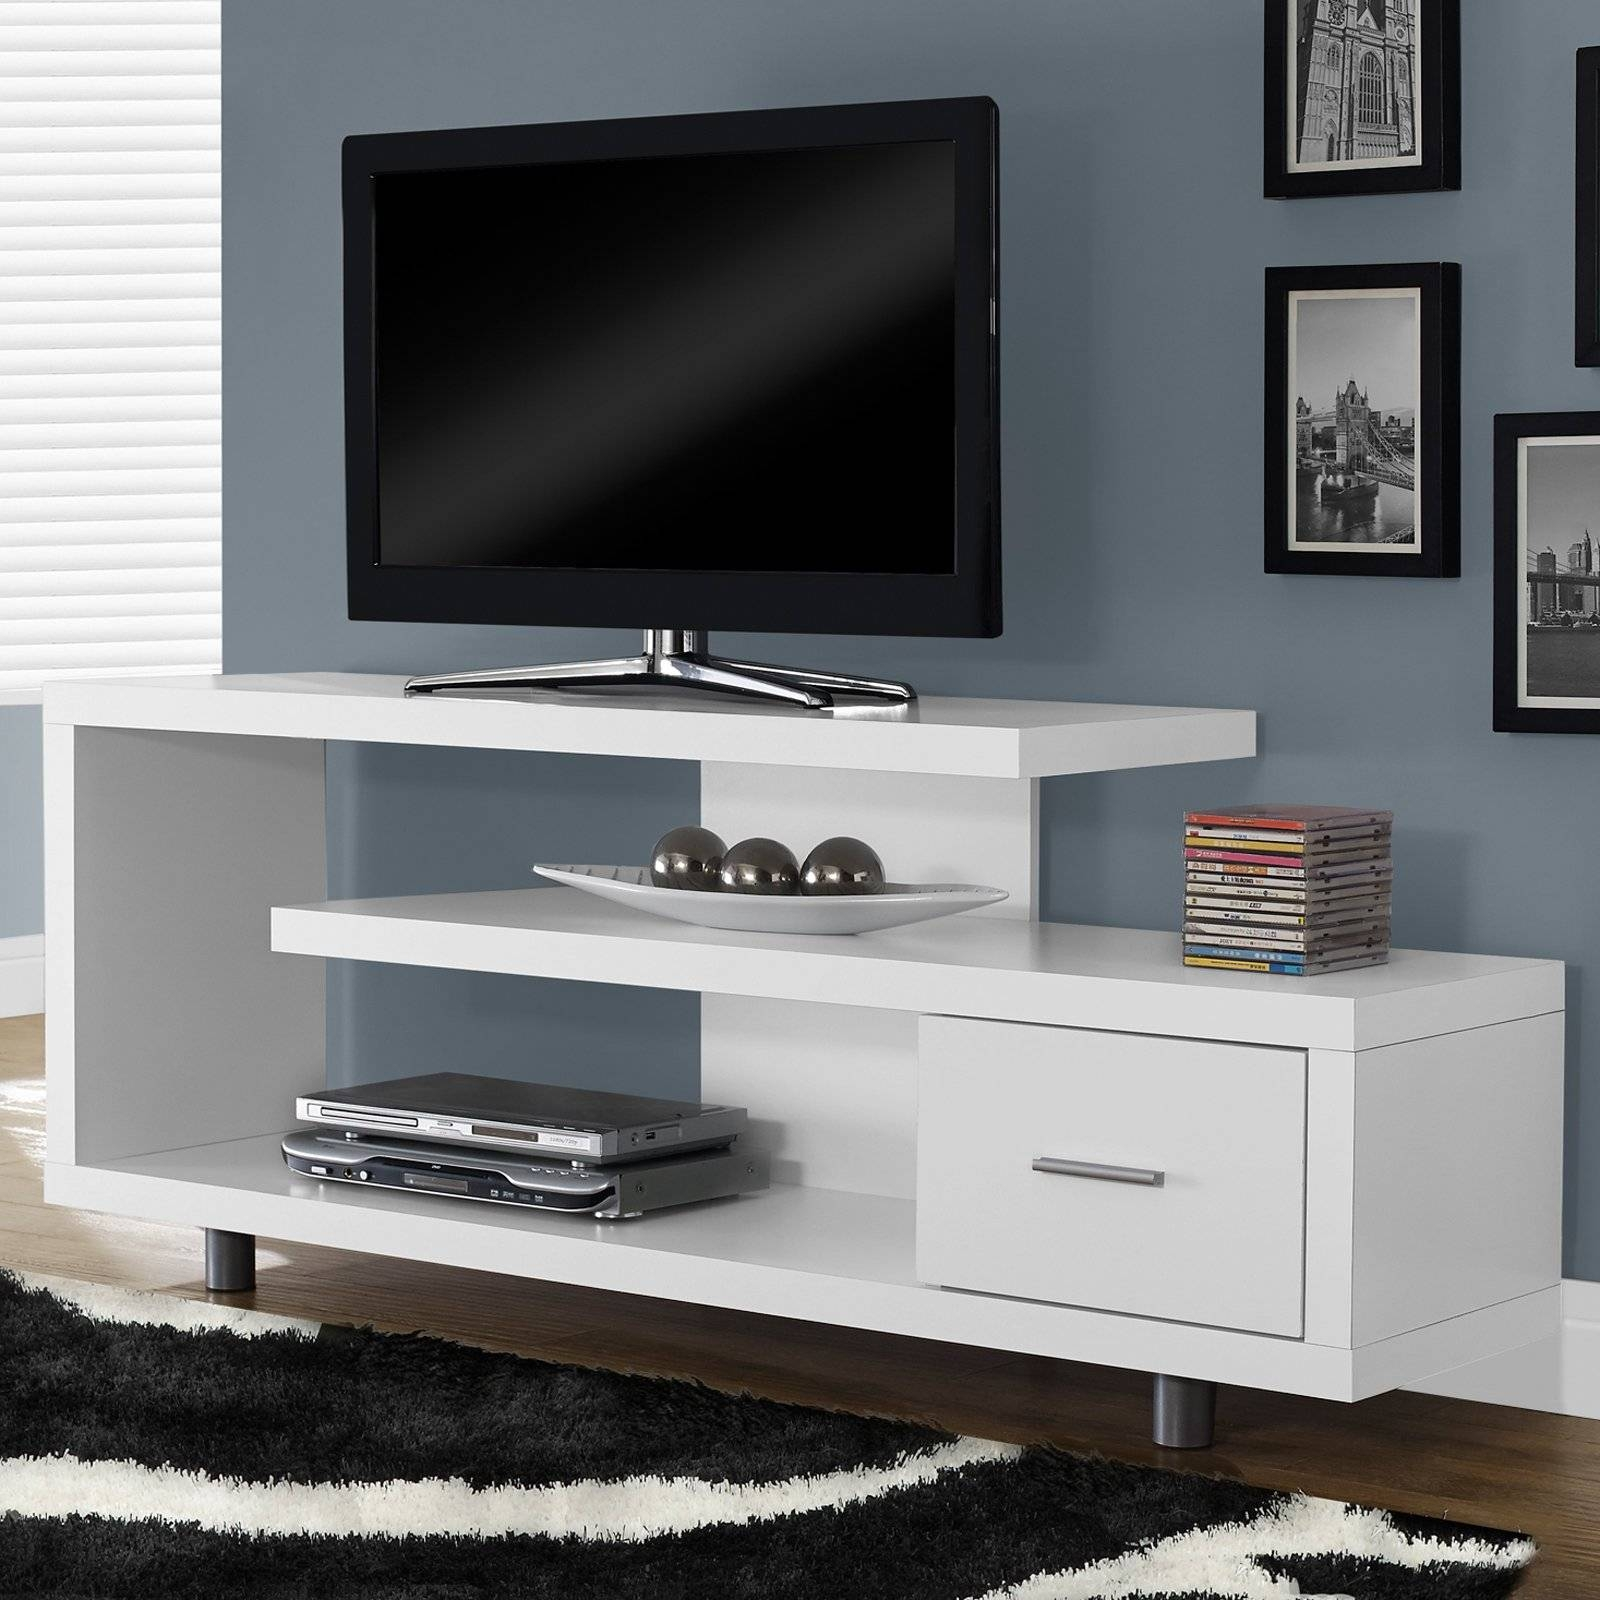 Tvilum Hayward Collection 71 In. Tv Stand | Hayneedle inside Fancy Tv Stands (Image 15 of 15)